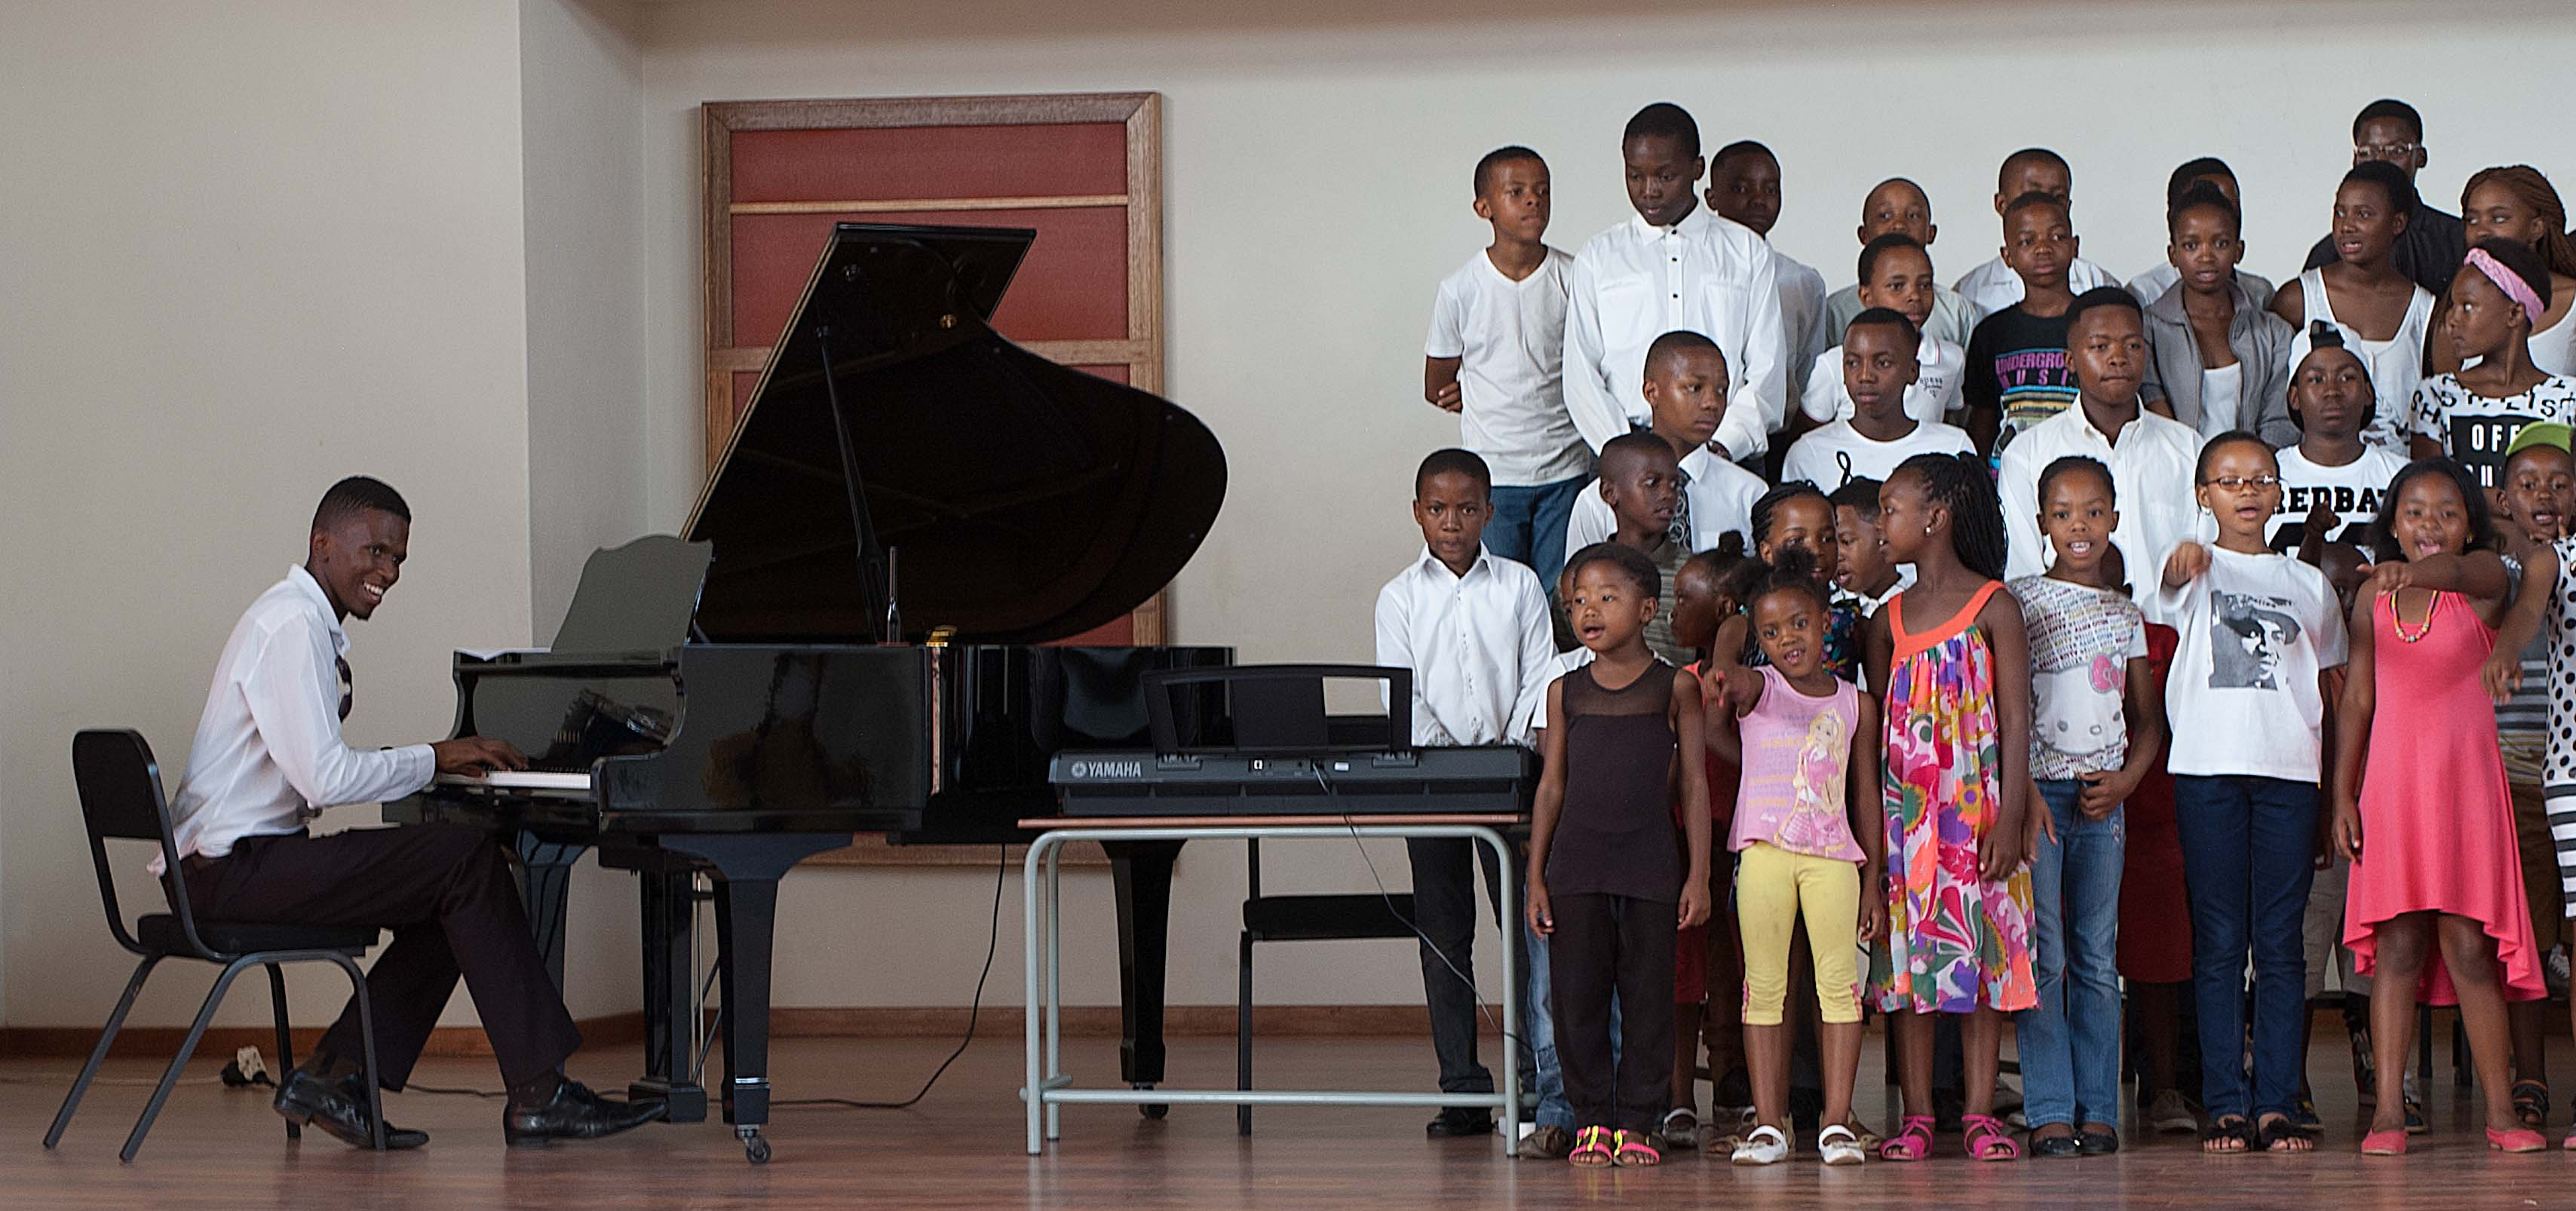 Grand Piano and Choir at Music Centre